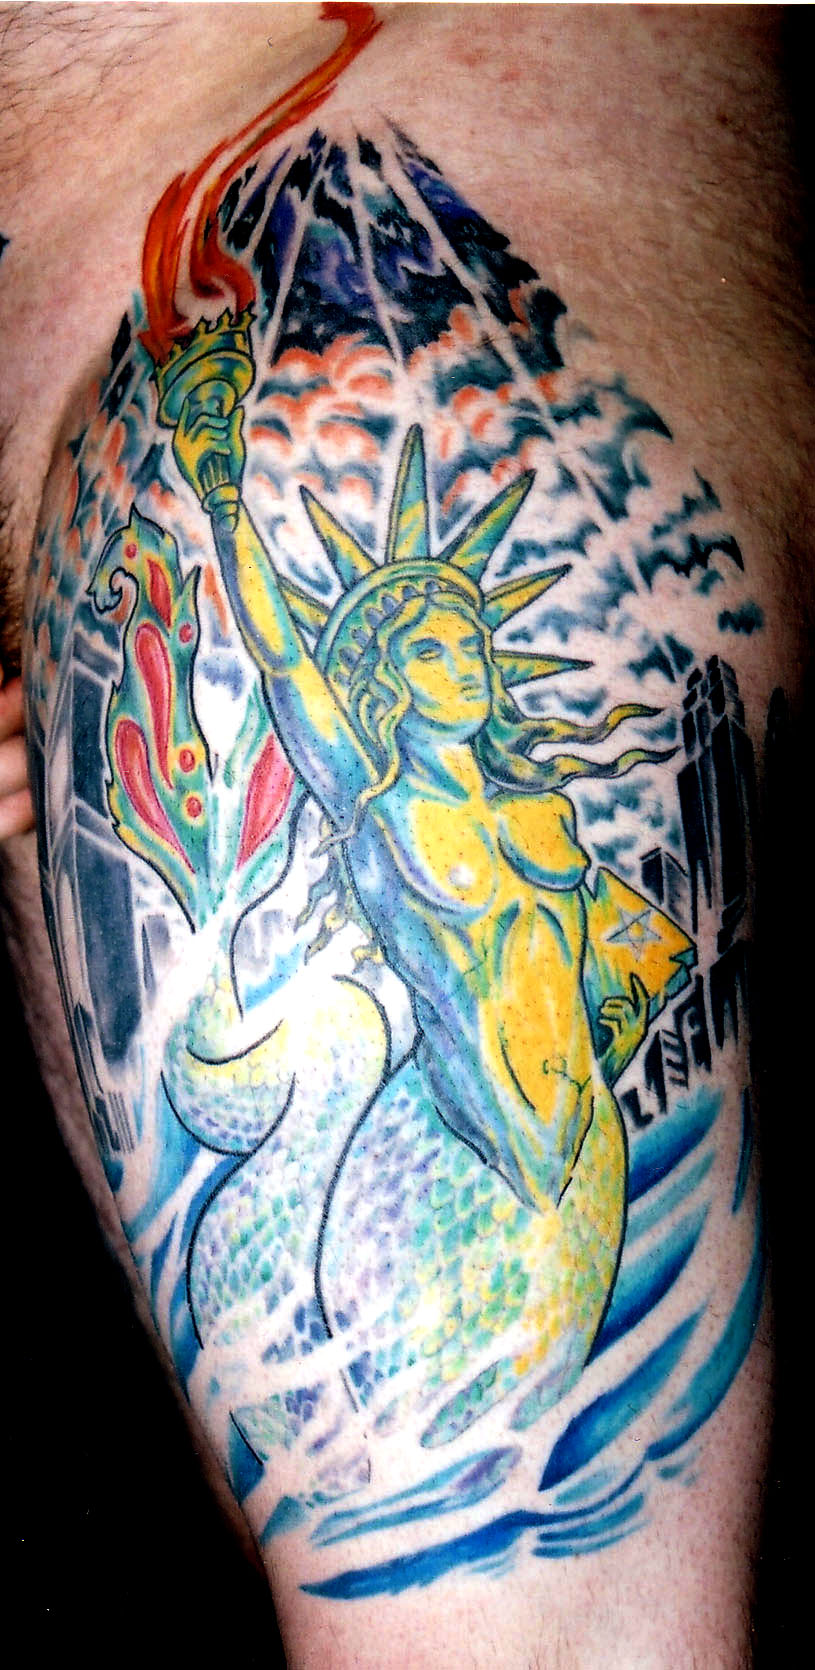 statue of liberty mermaid new york city transformation tattoo majestic tattoo nyc